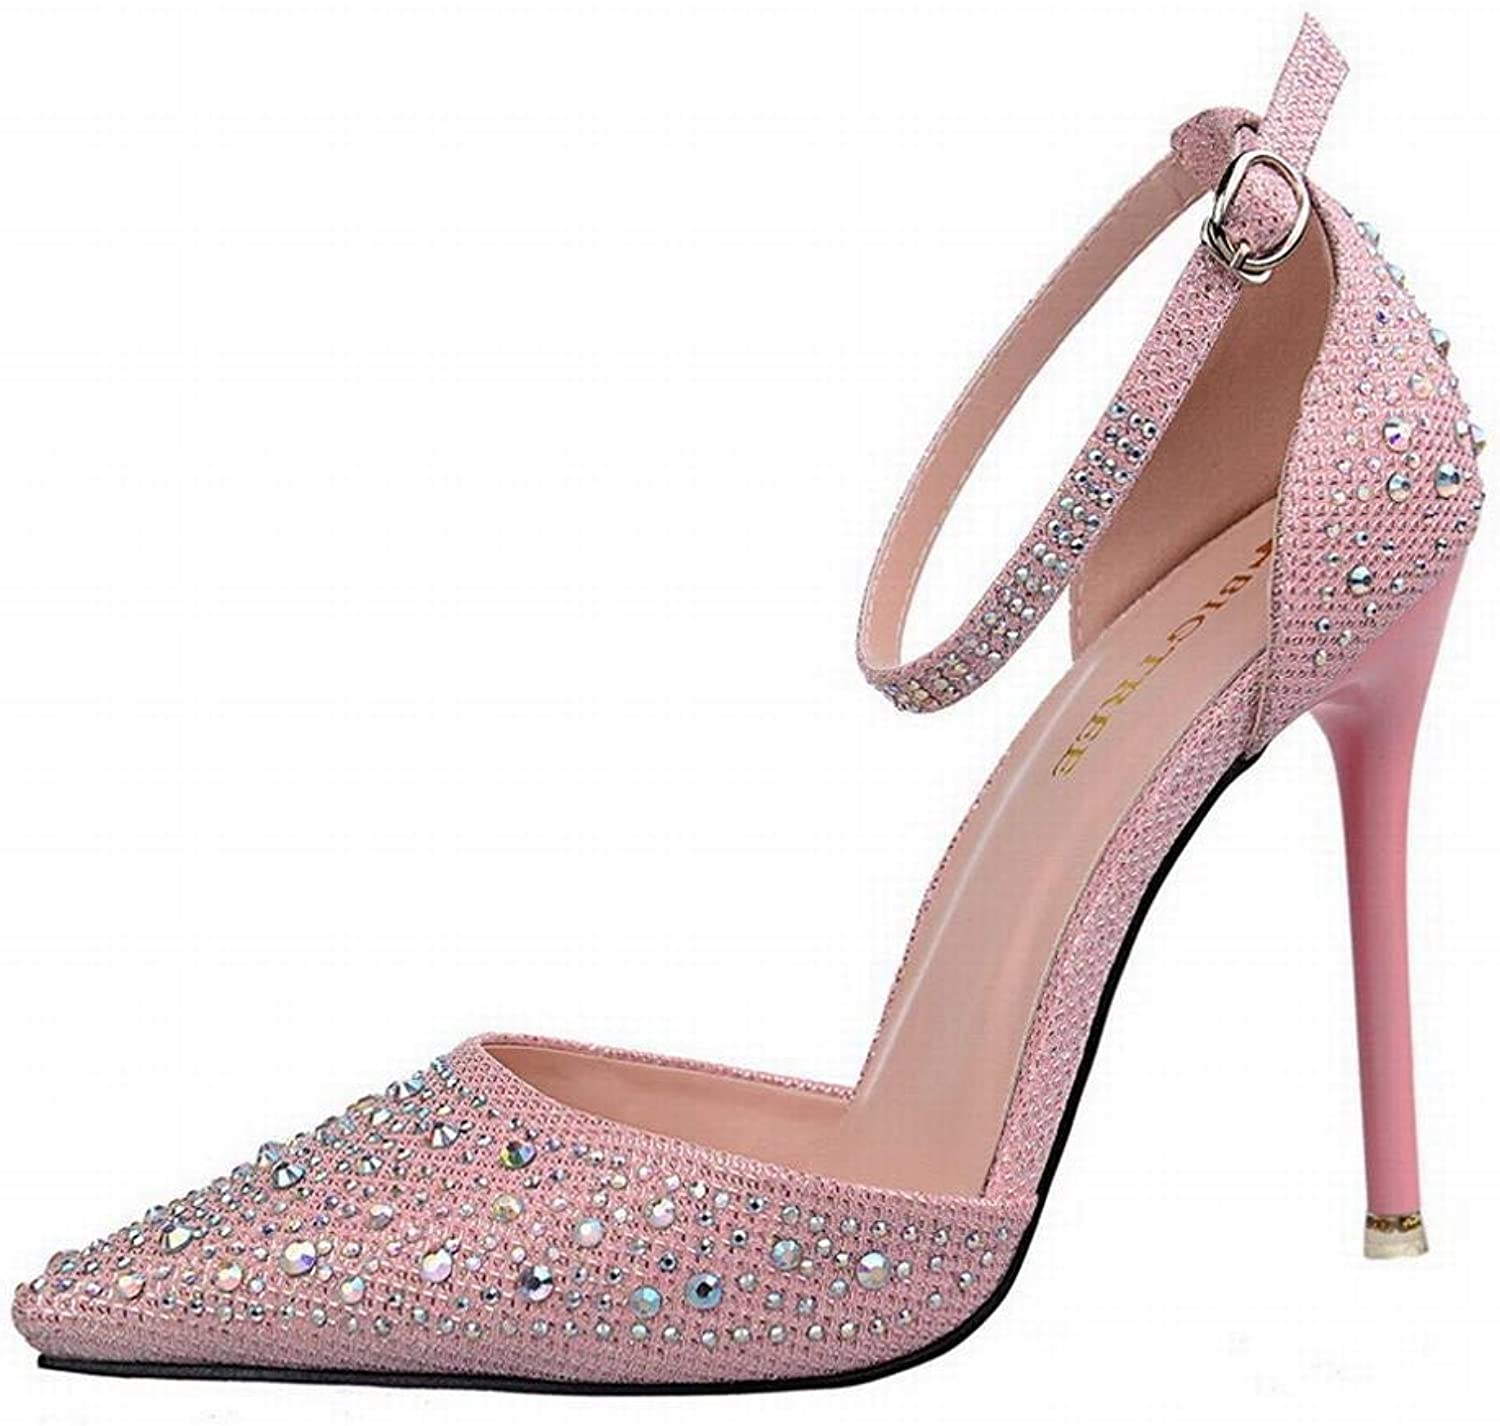 Kirabon Women's Shiny Rhinestone Stiletto High-Heeled Pointed Cutout Sandals Sweet Princess shoes (color   Pink, Size   39)